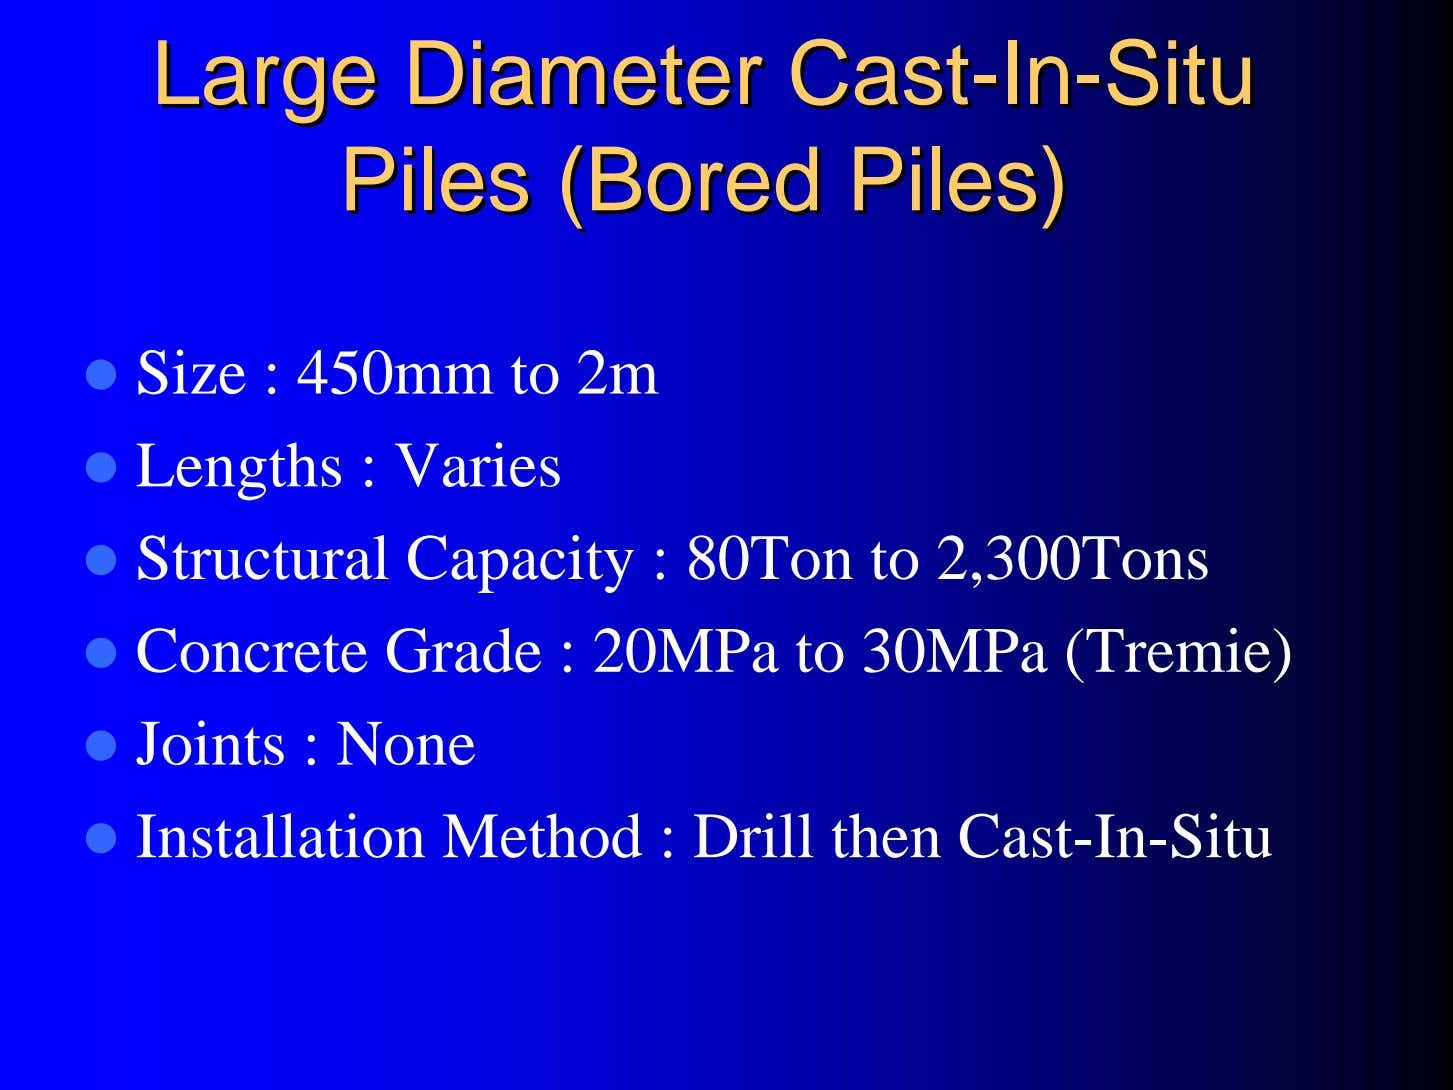 LargeLarge DiameterDiameter CastCast--InIn--SituSitu PilesPiles (Bored(Bored Piles)Piles) Size : 450mm to 2m Lengths